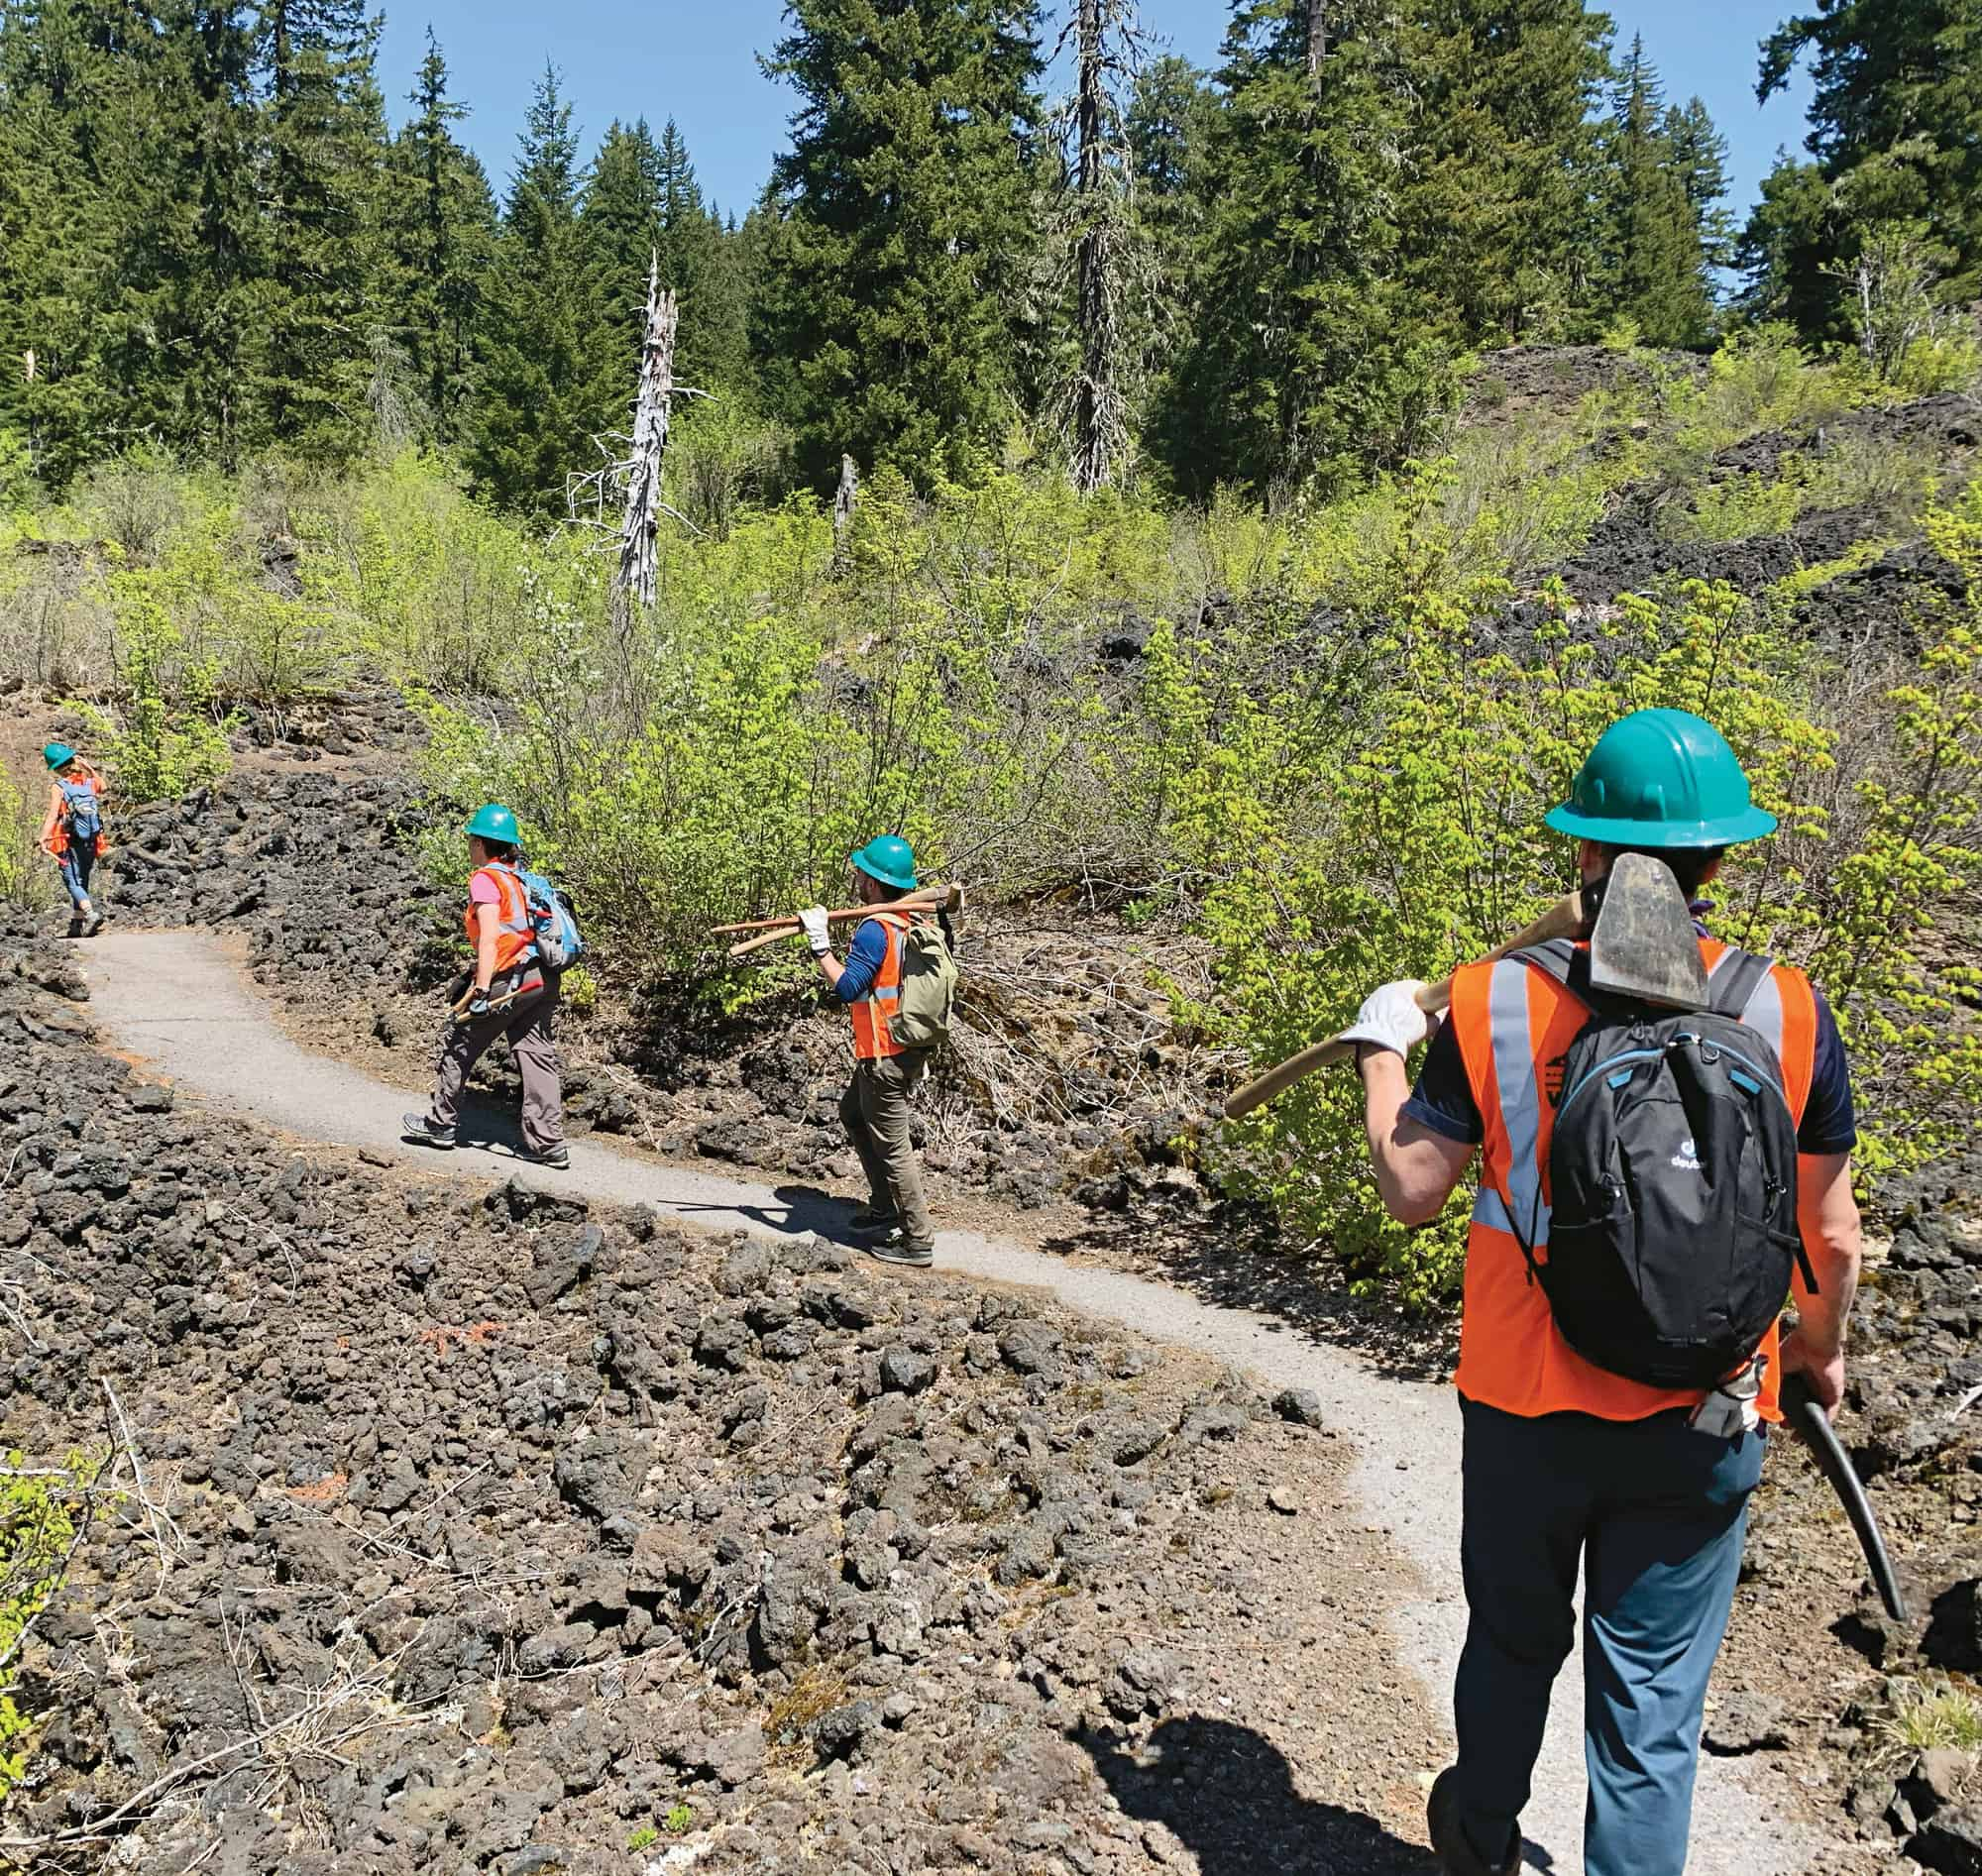 Doing trail work with the McKenzie Regenerative Travel Project offers good hiking while restoring public lands.